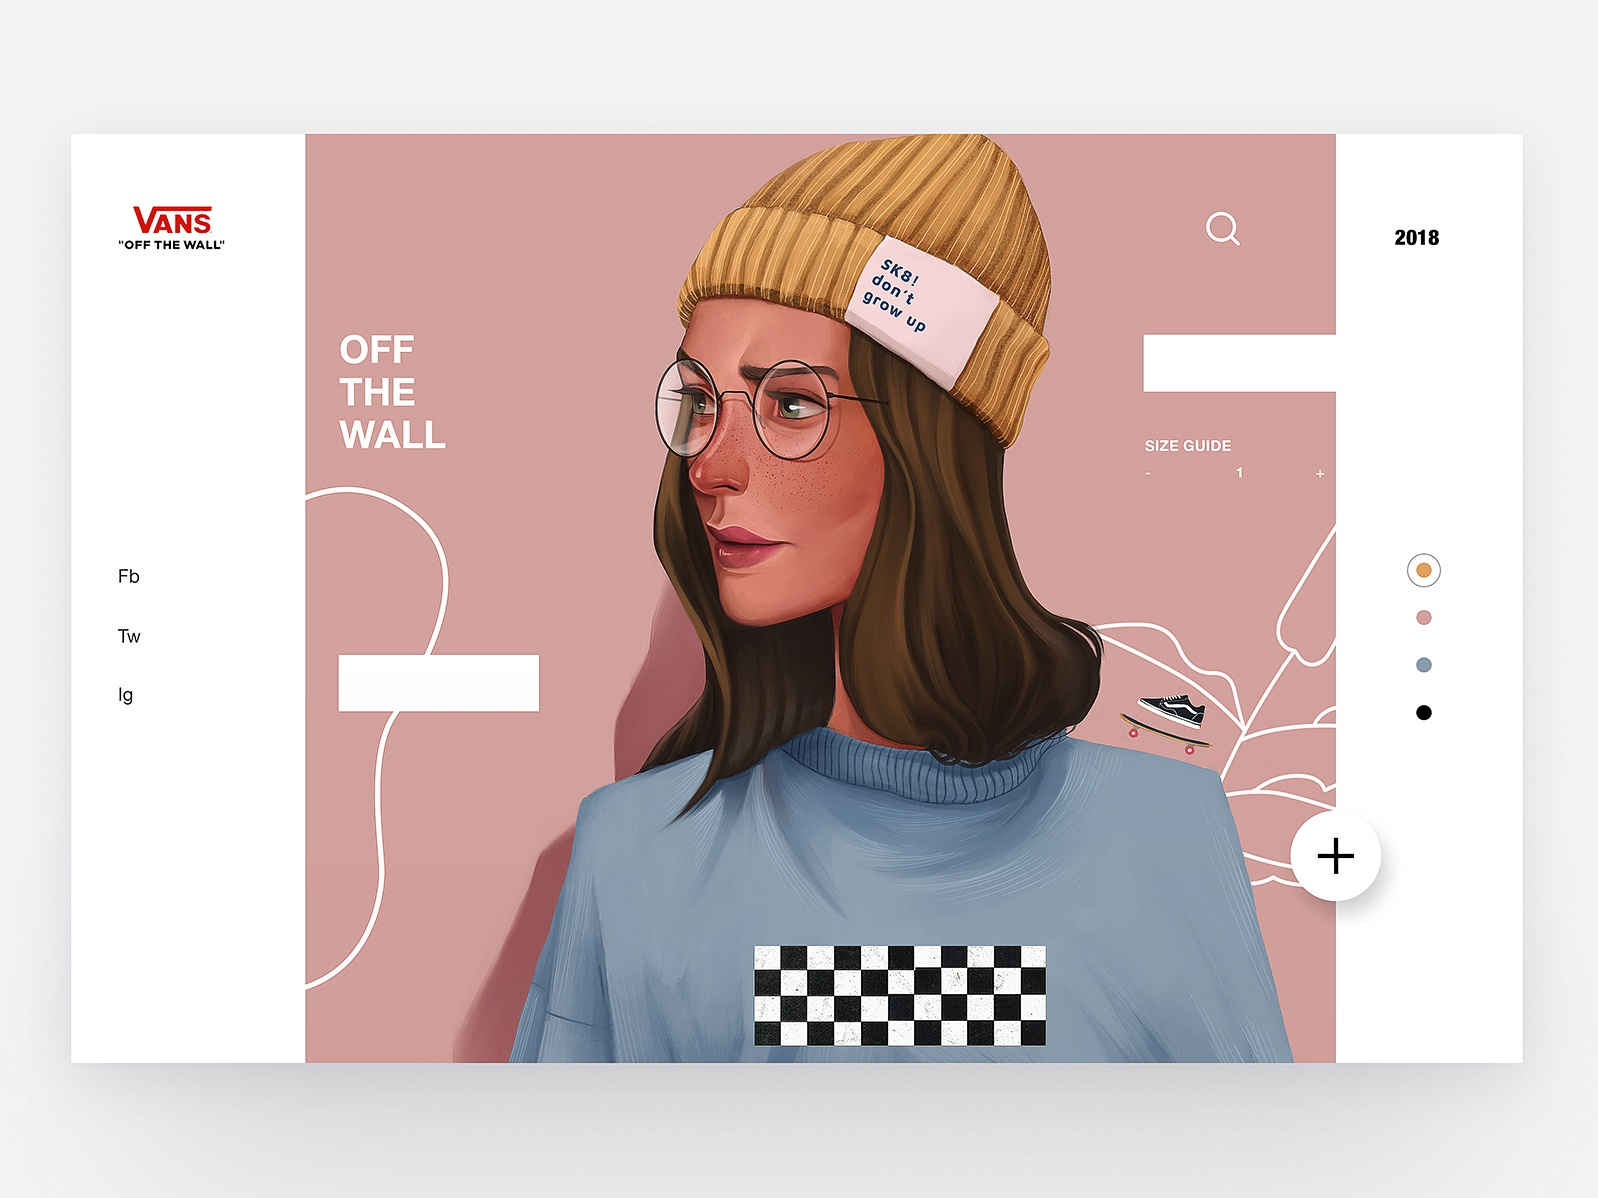 Vans - Concept Illustration Design II character app concept skate vans web interface animation illustration ux design ui